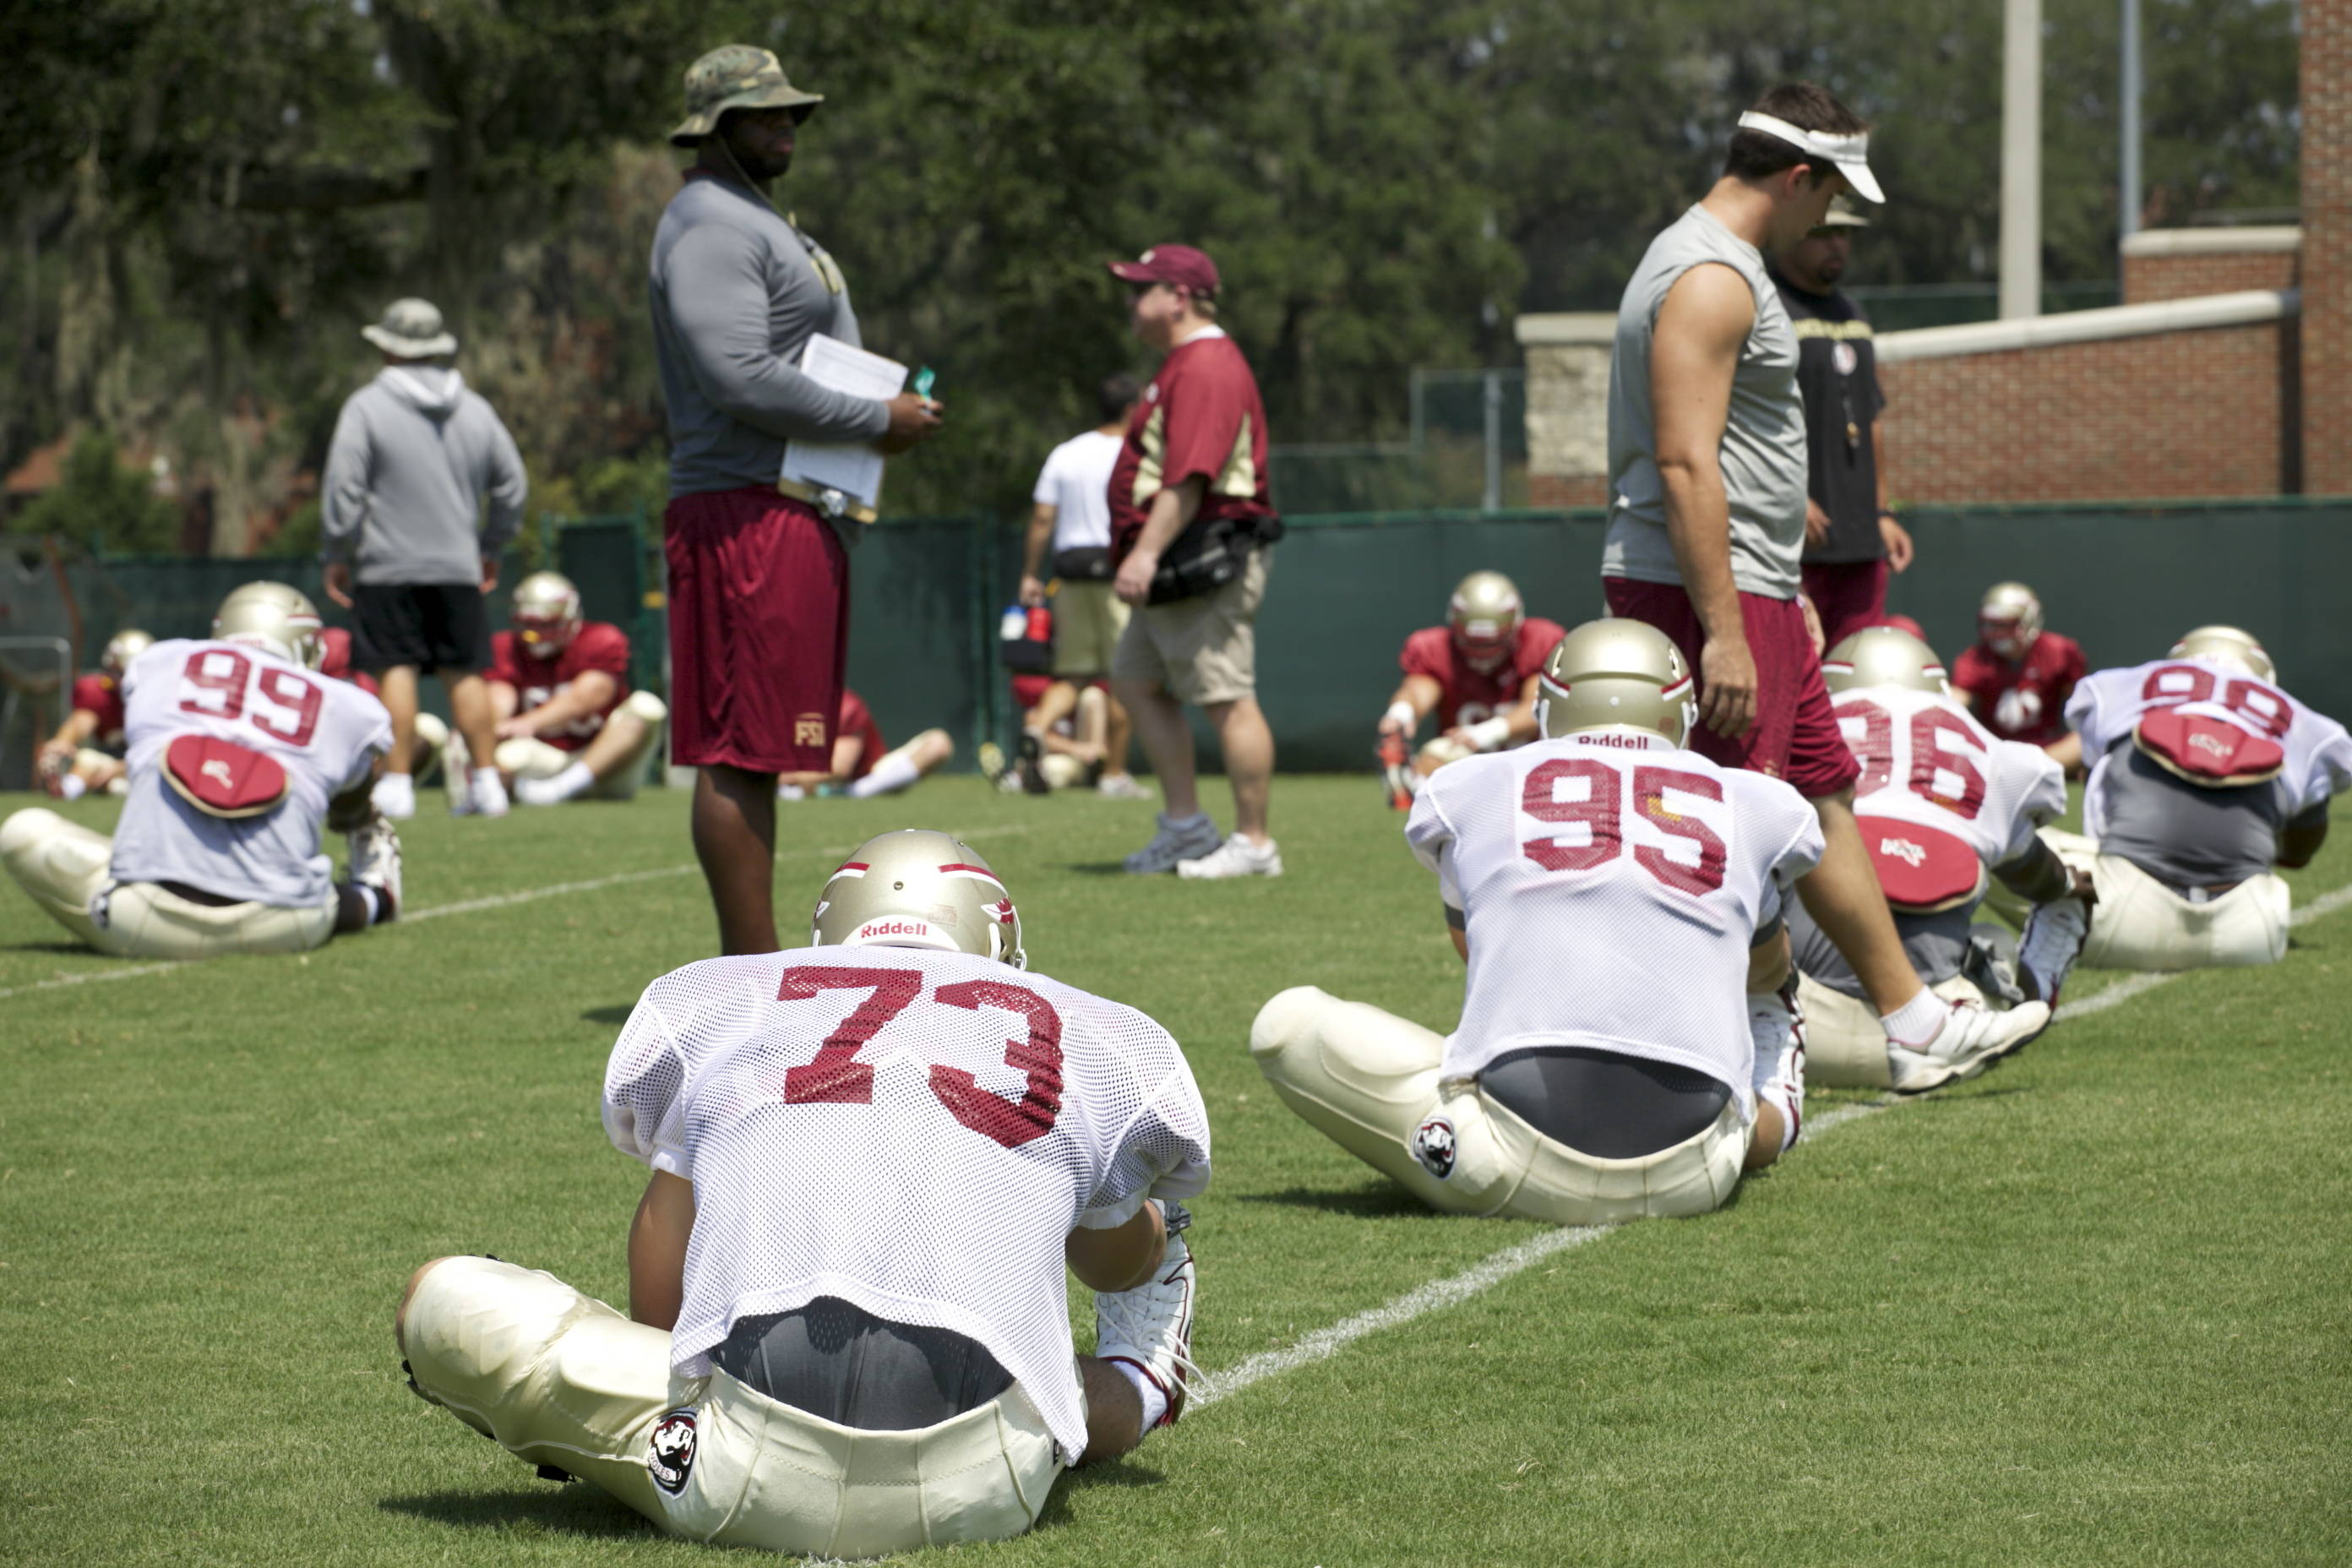 Defense stretching before practice